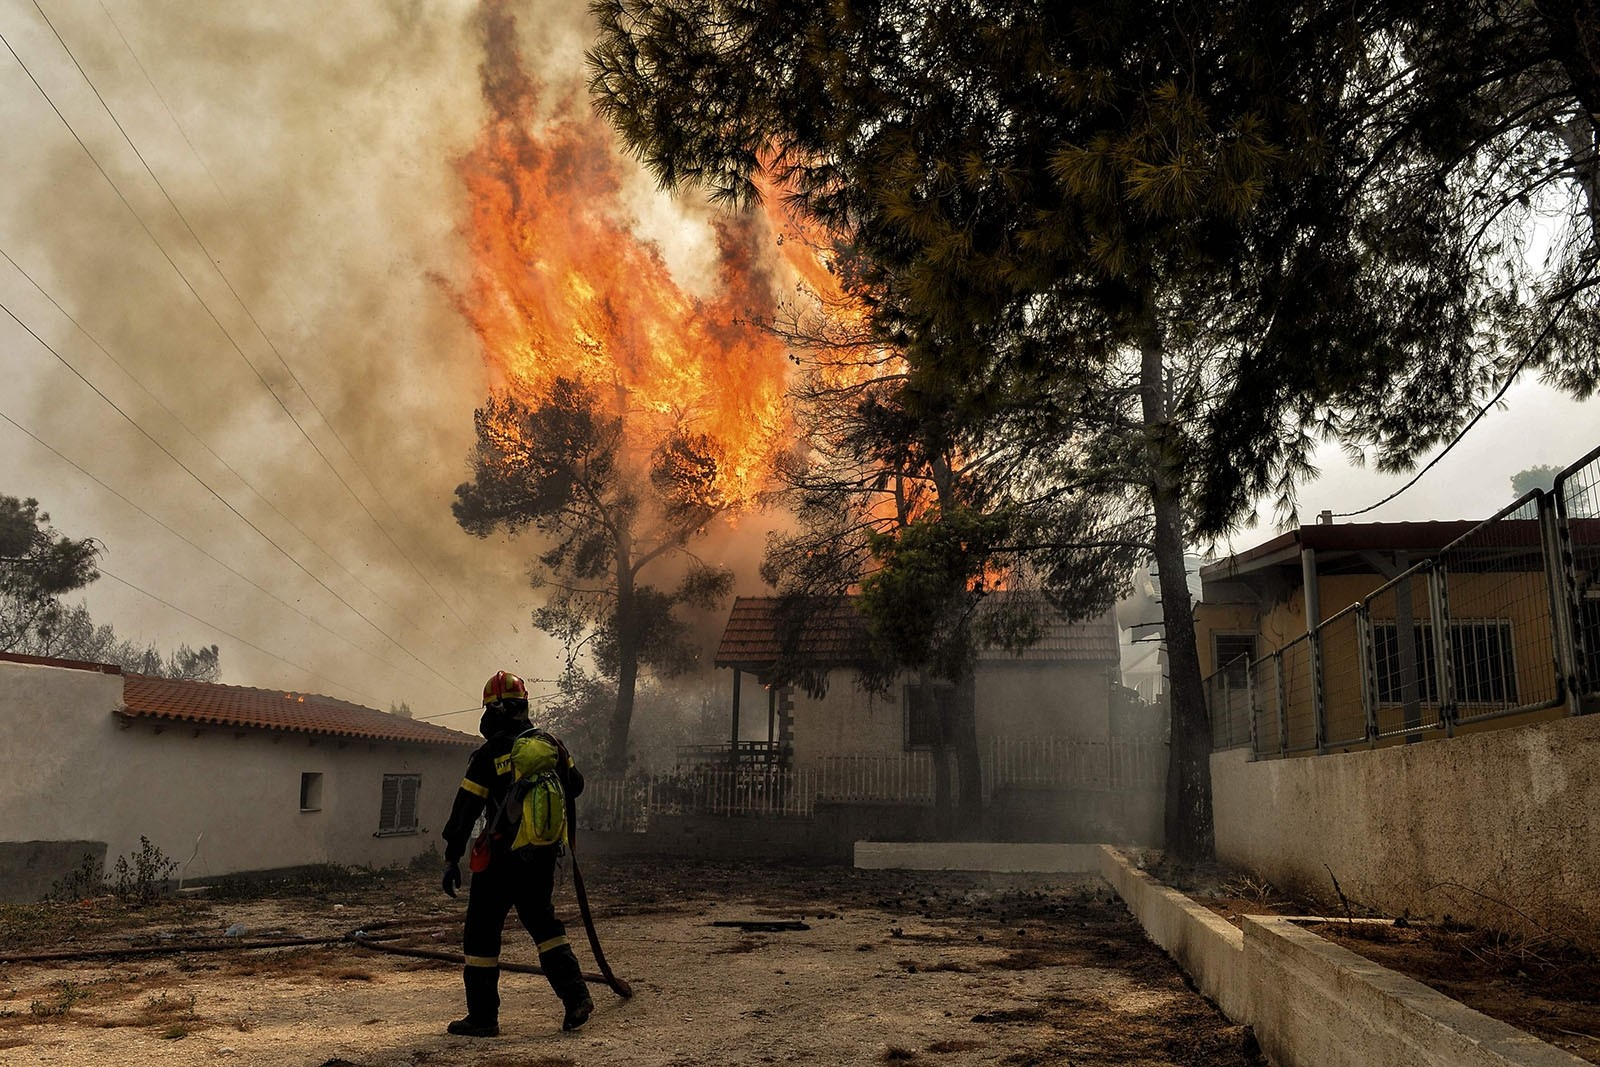 A firefighter tries to extinguish hotspots during a wildfire in Kineta, near Athens, on July 23, 2018.